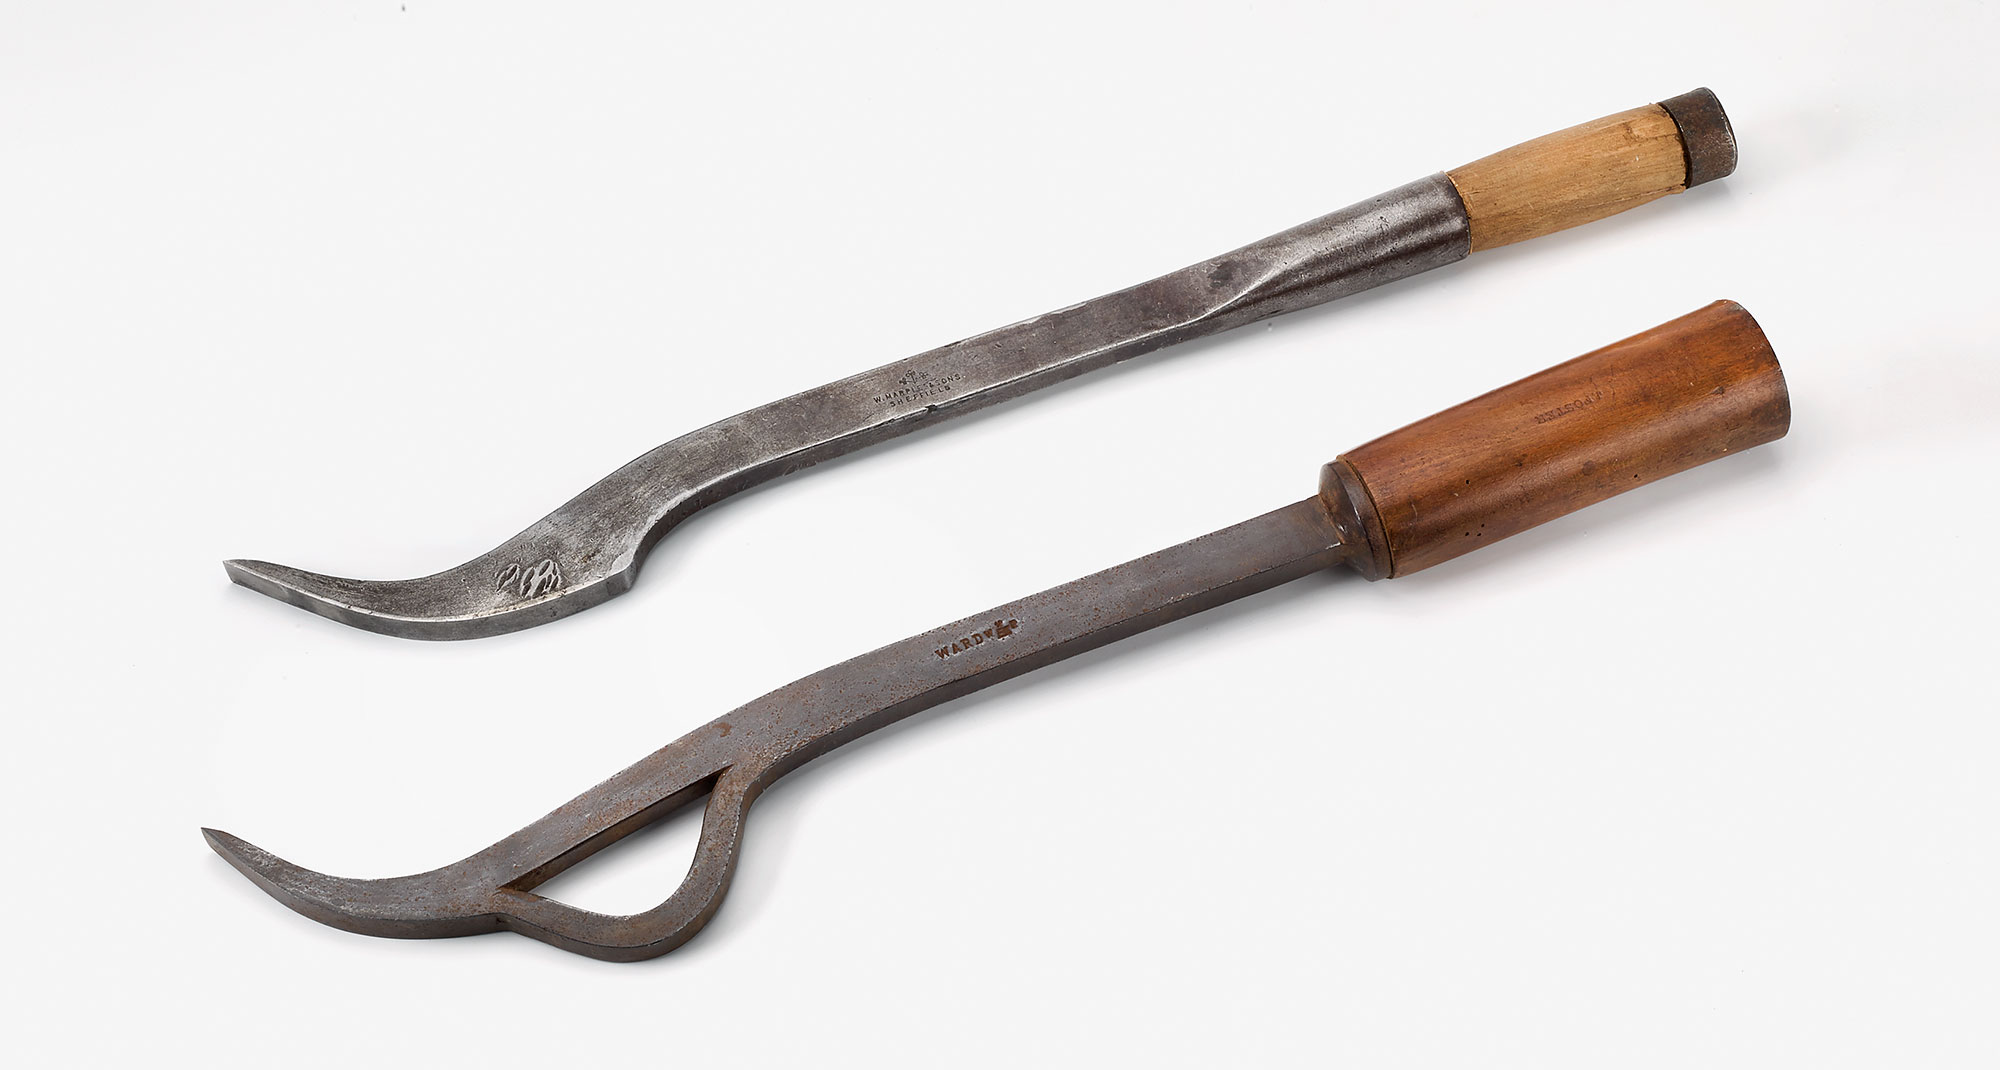 At the top is shown the standard type mortise chisel; below it is shown a swan's neck mortise chisel